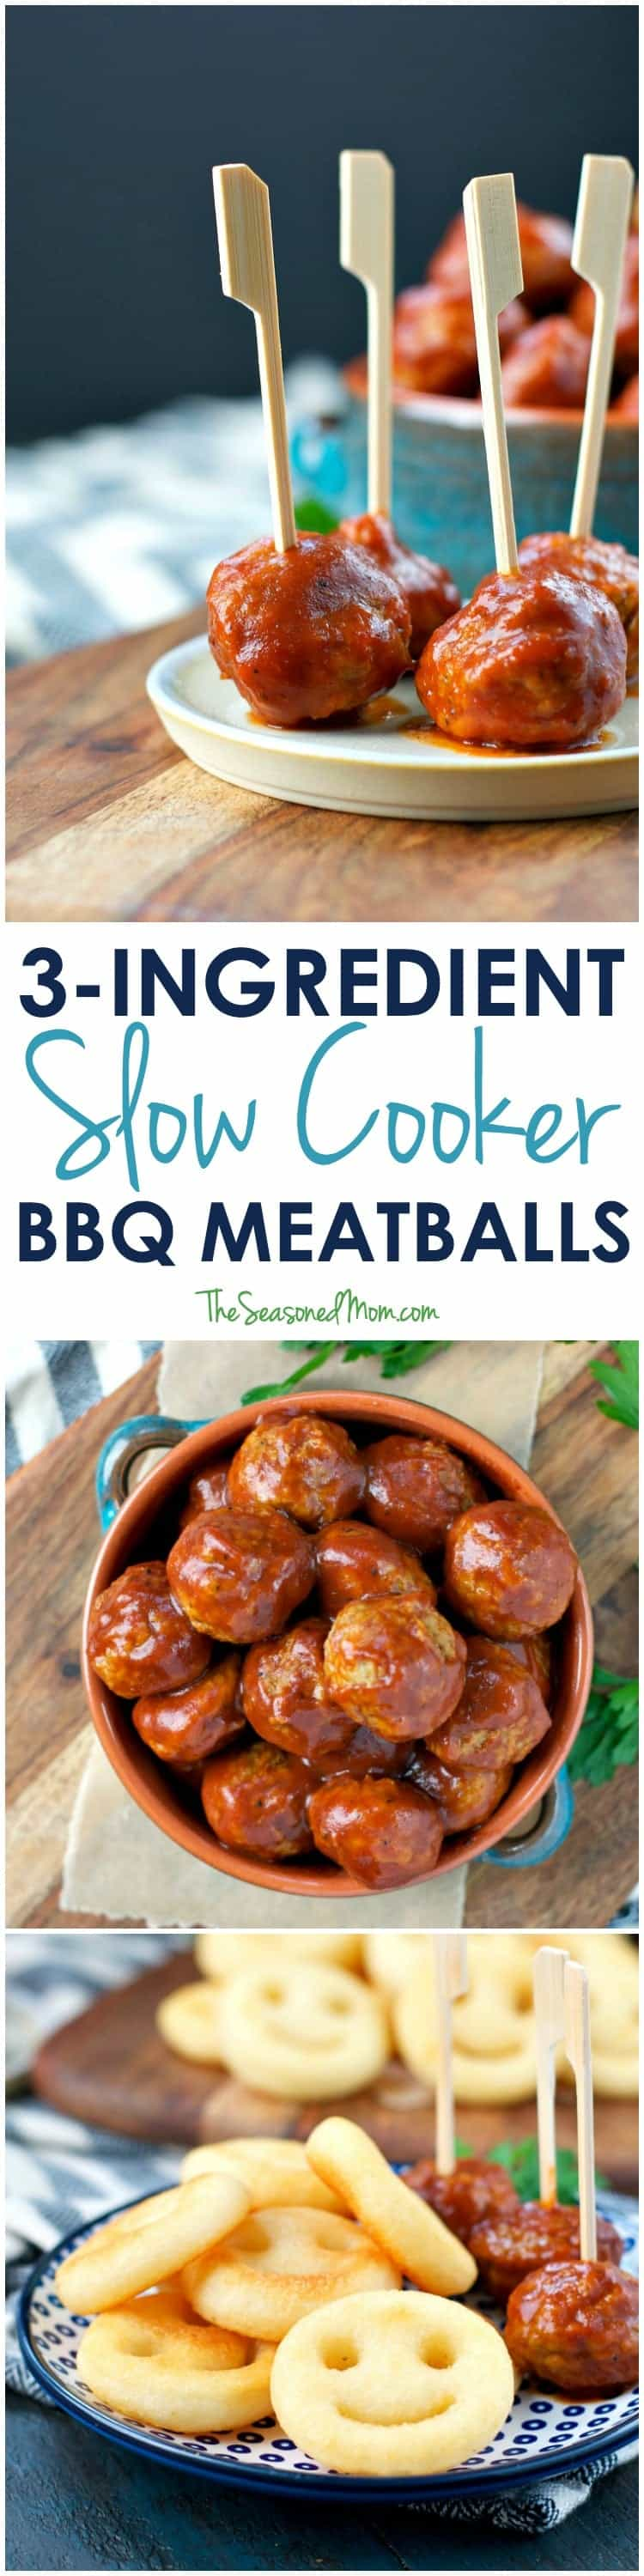 These 3-Ingredient Slow Cooker Meatballs are the perfect easy appetizer, party snack, or weeknight dinner for busy families!